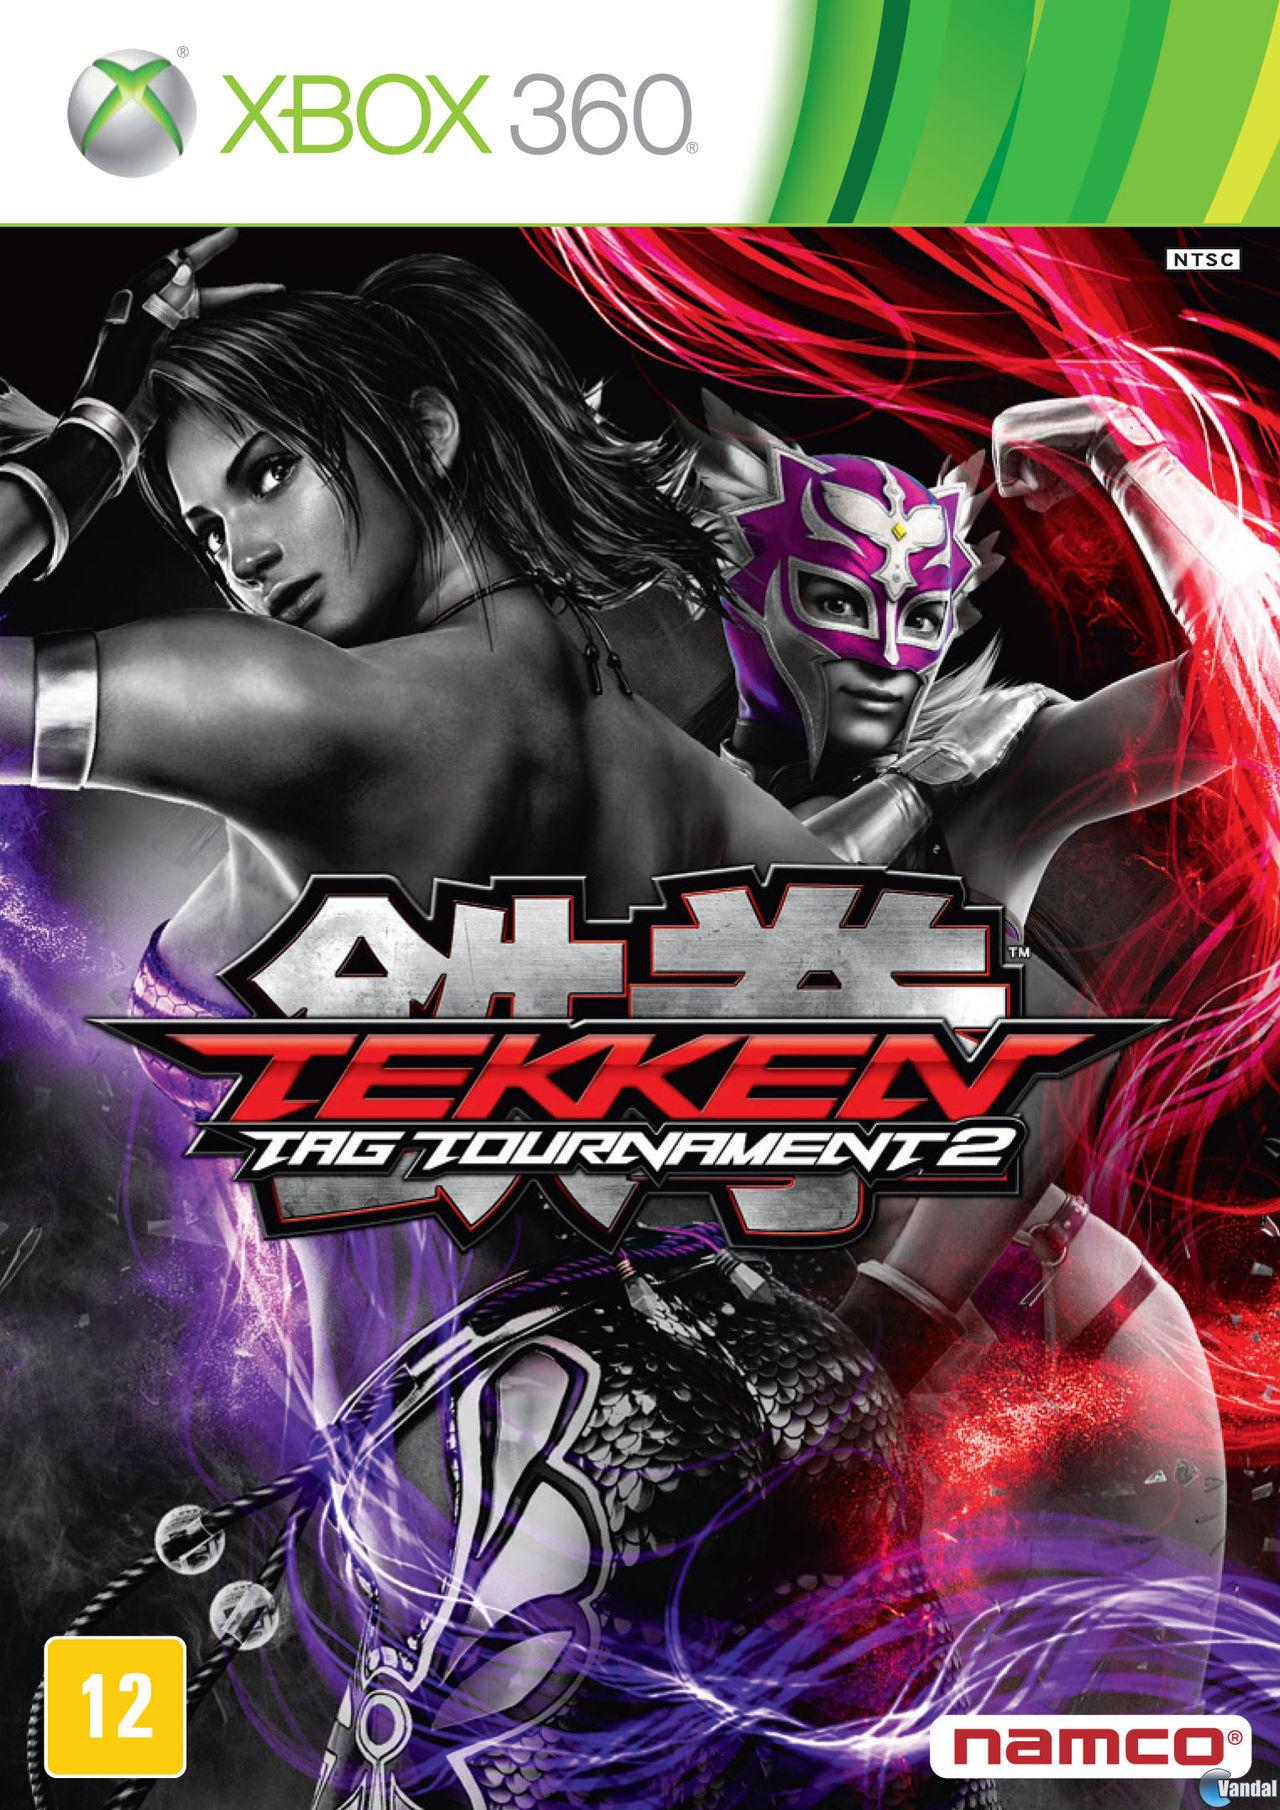 Revelados los diseos de portada de Tekken Tag Tournament